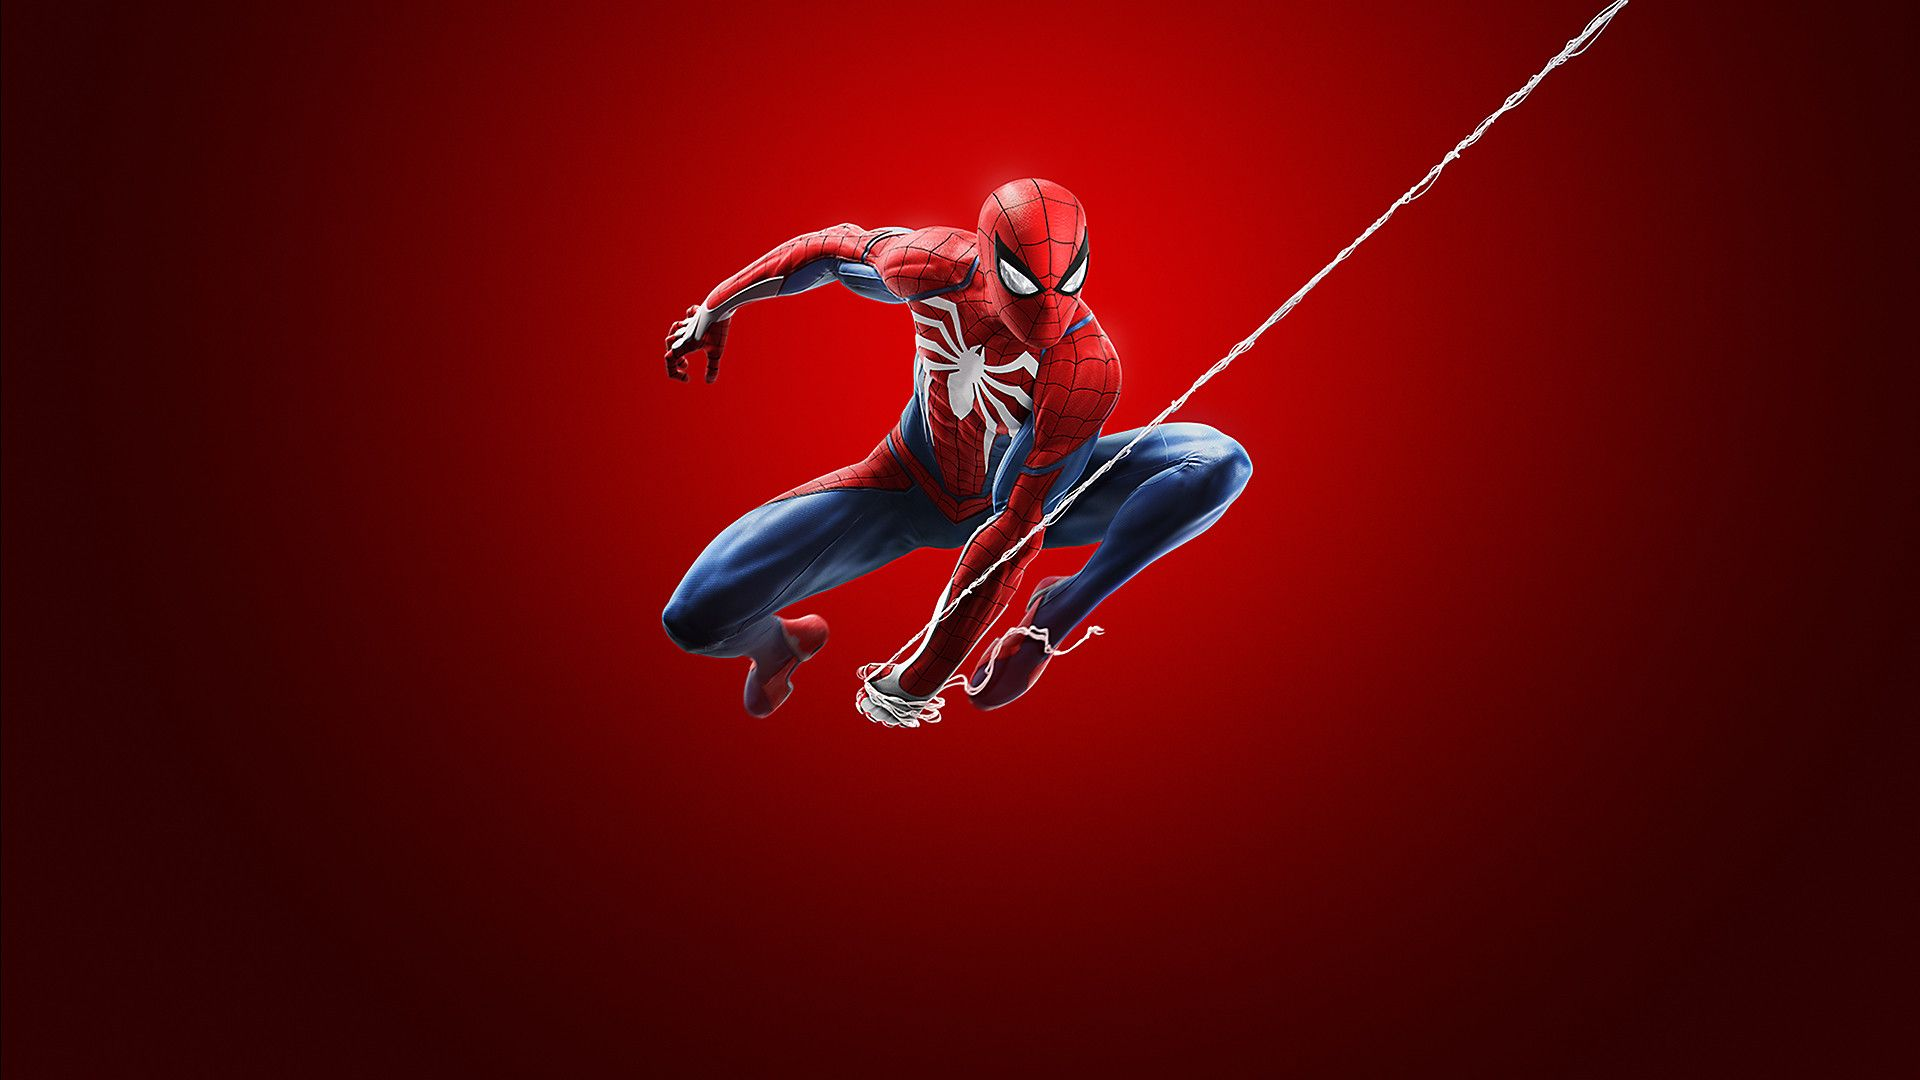 Marvel's Spider-Man releases this week, does it live up to the hype?